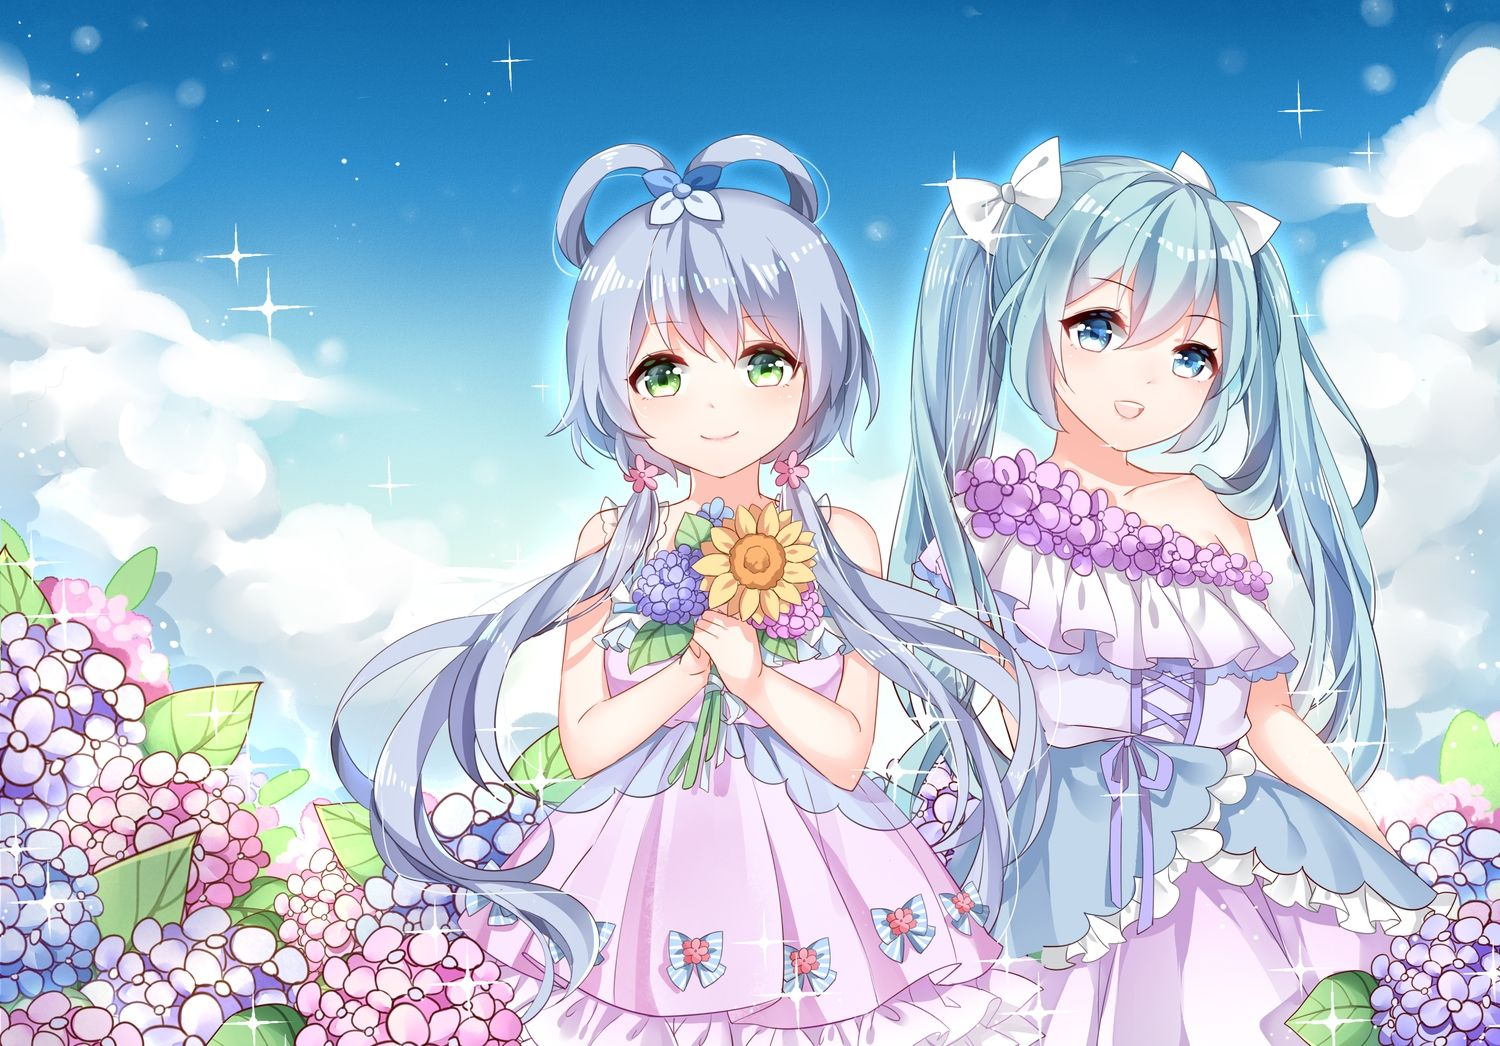 2girls hatsune_miku luo_tianyi vocaloid vocaloid_china